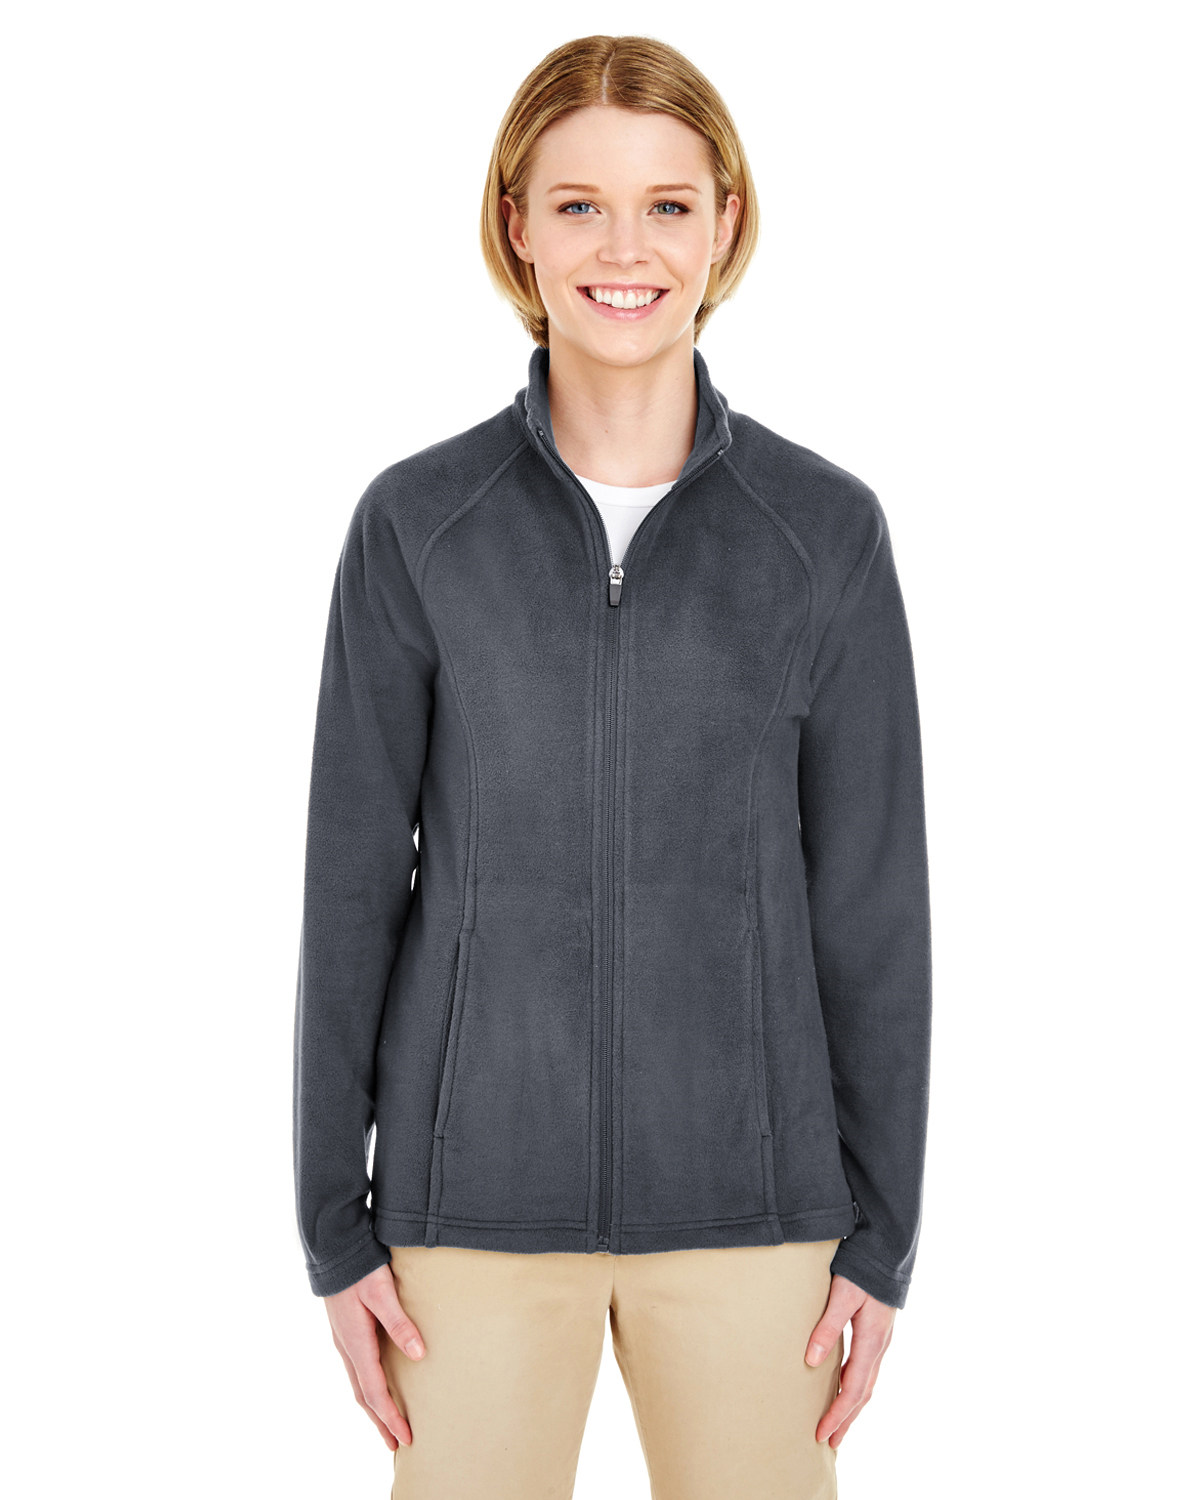 Ladies' Cool & Dry Full-Zip Microfleece